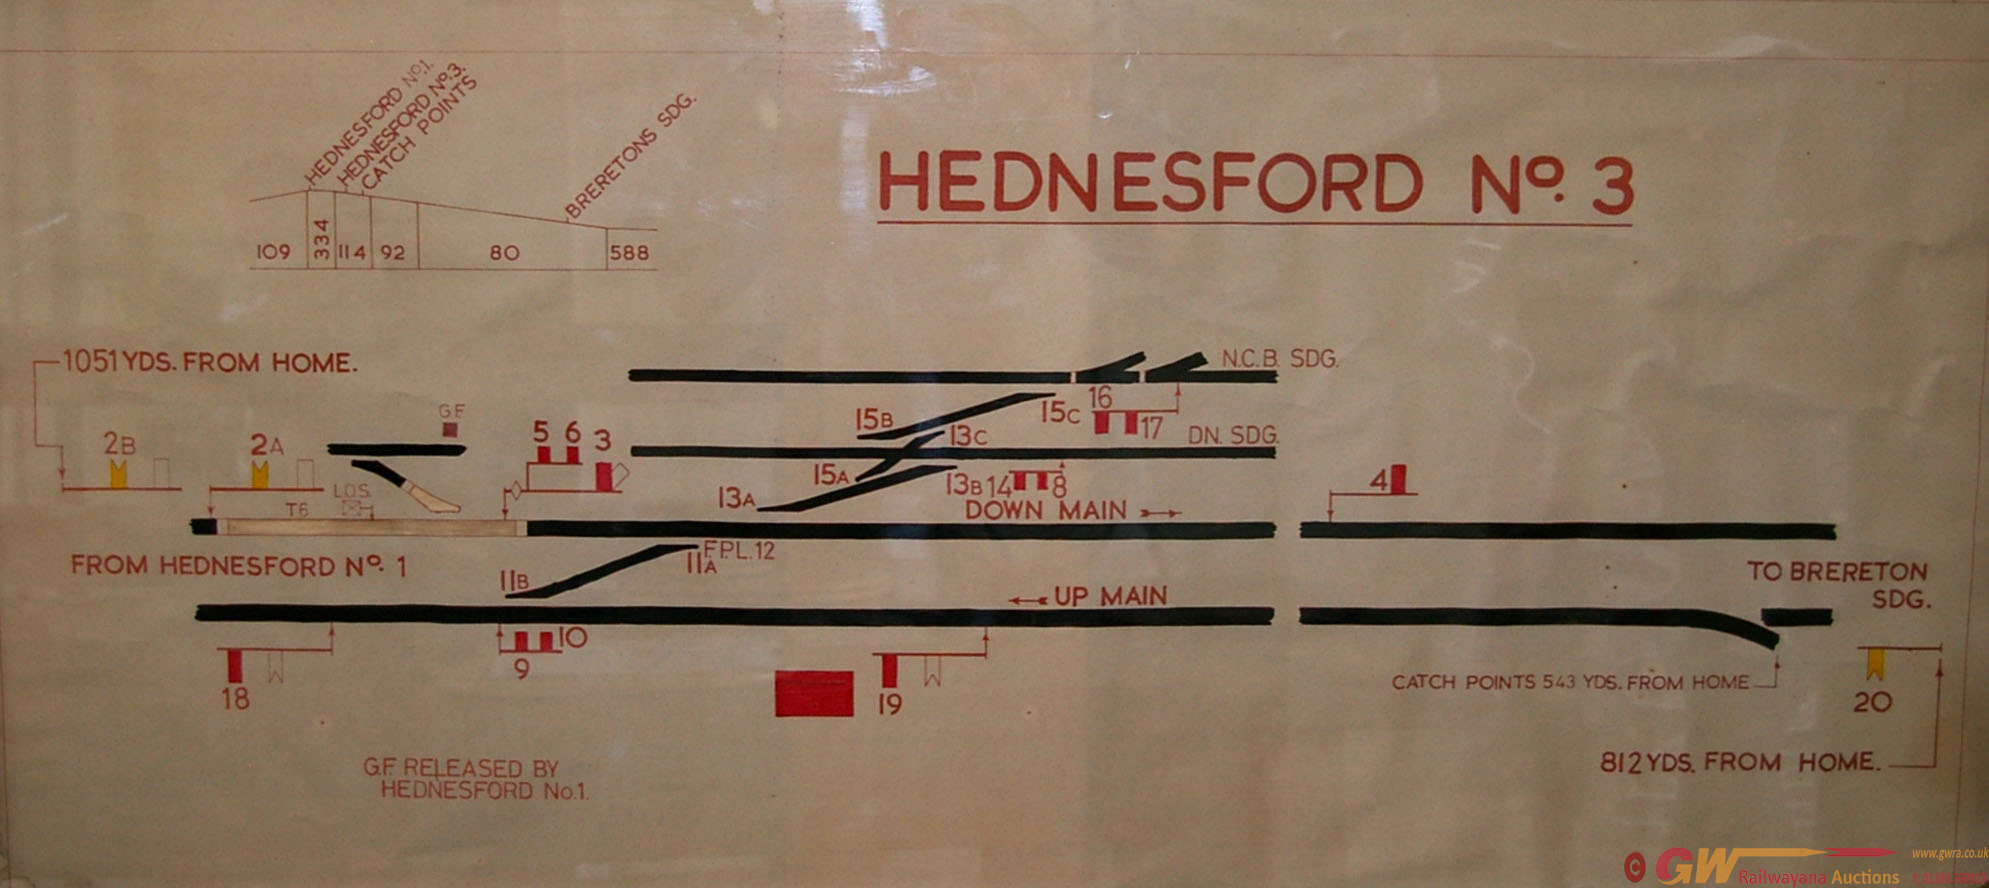 Signal Box Diagram HEDNESFORD No 3 Situated